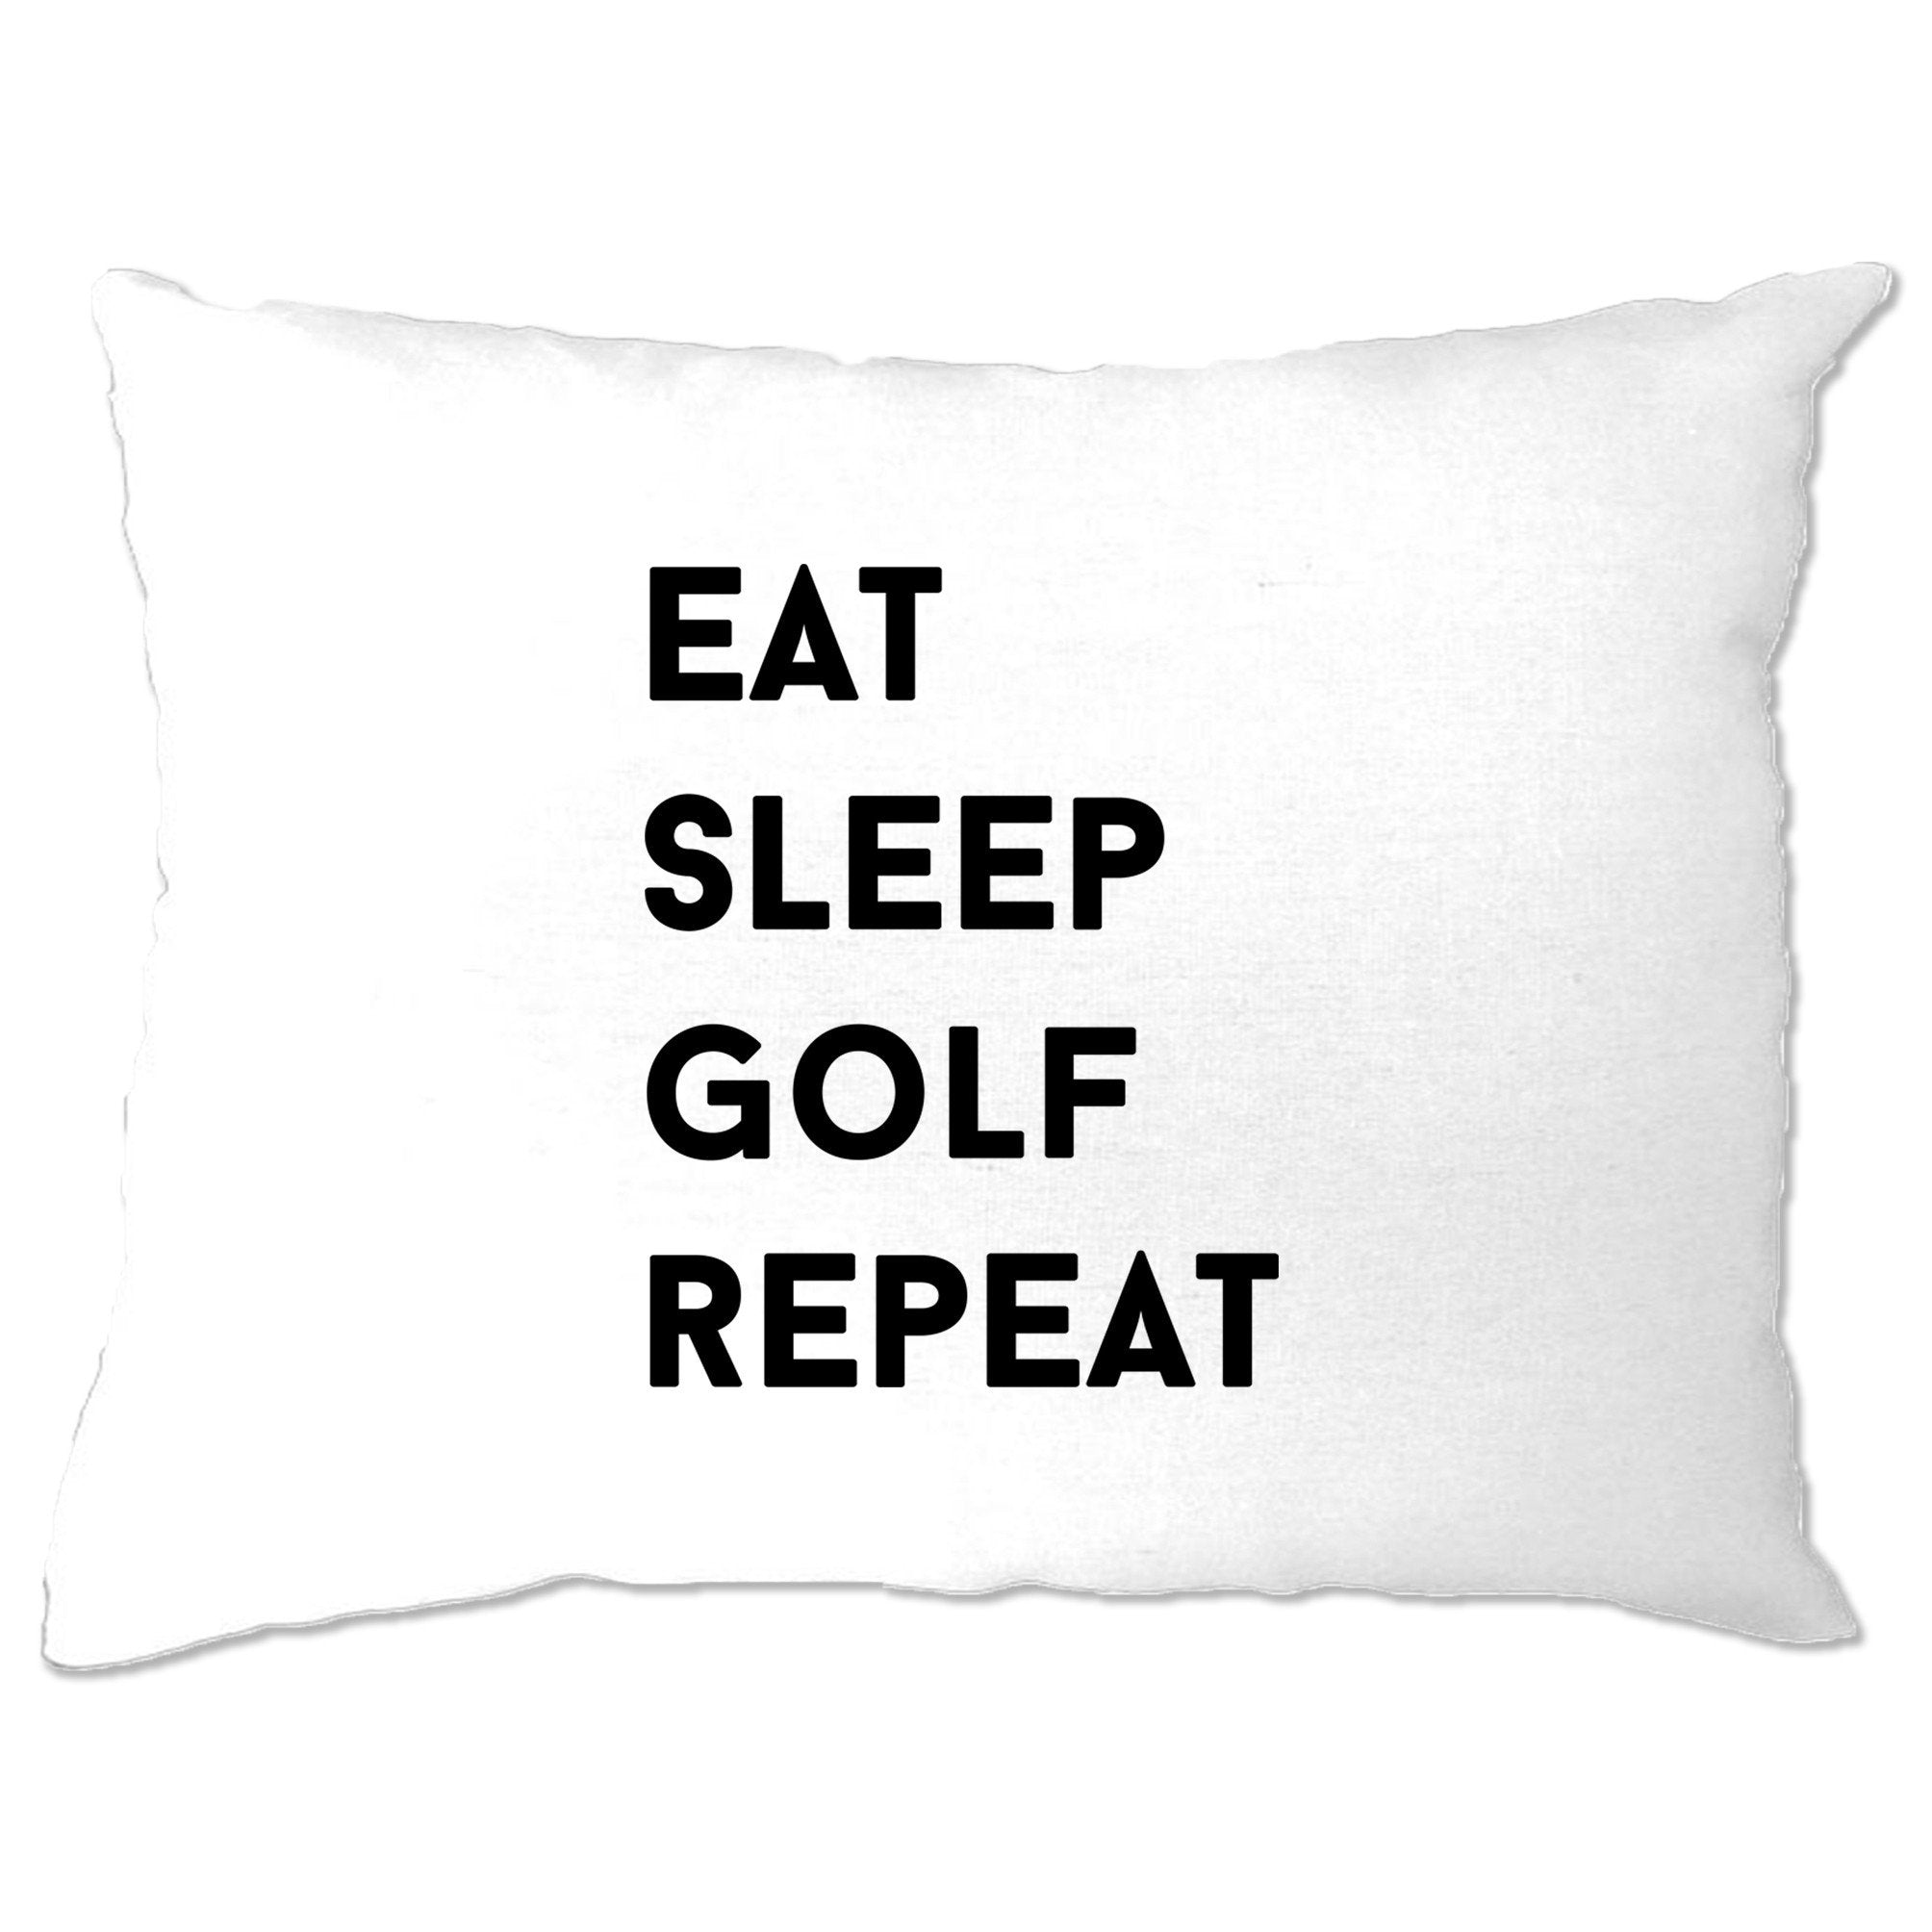 Sports Pillow Case Eat, Sleep, Golf, Repeat Slogan